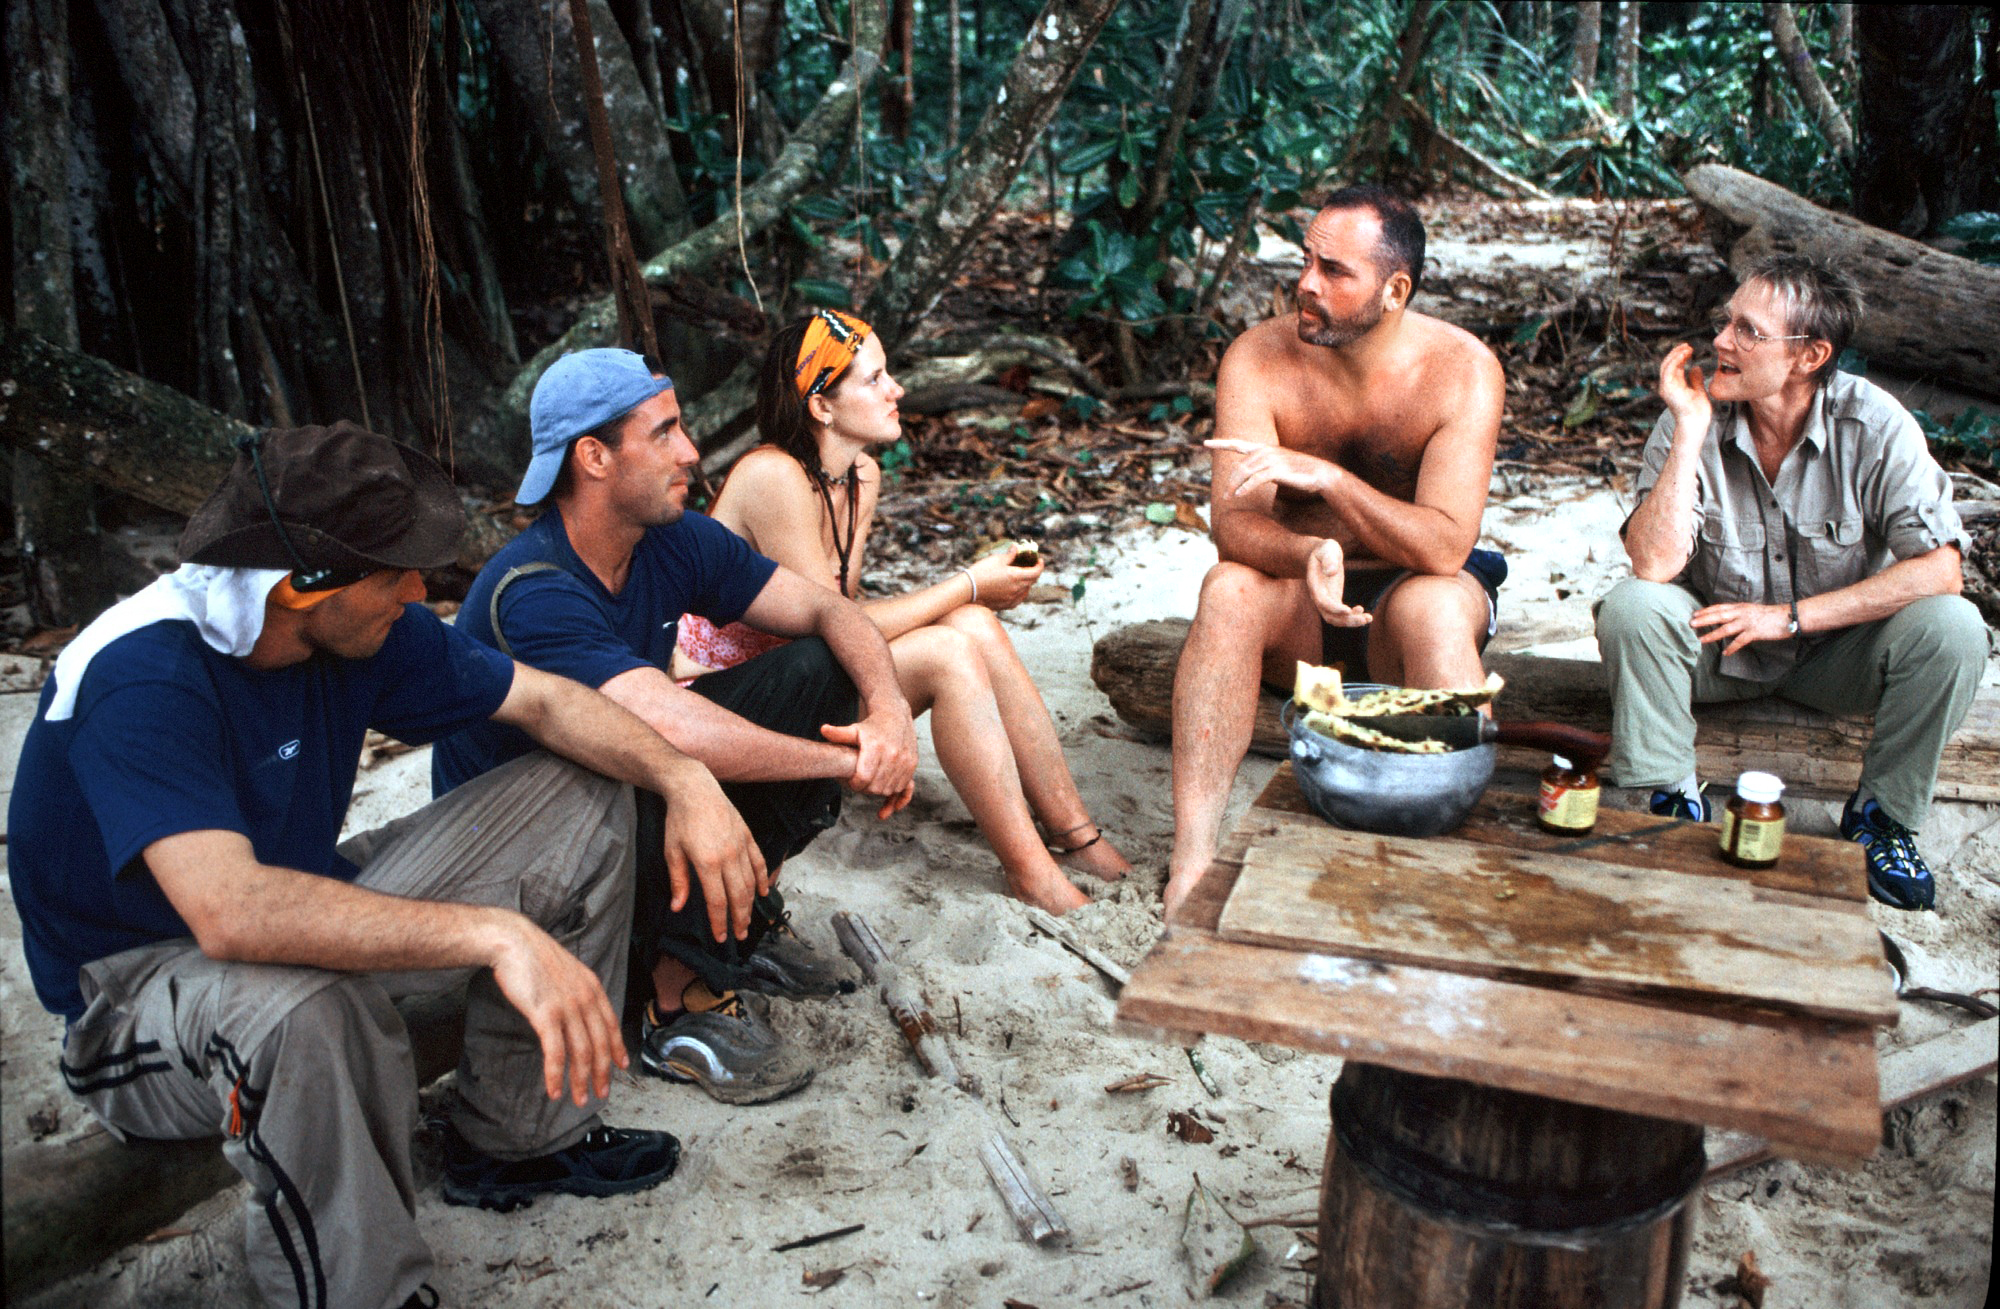 In 2000, Survivor wasn't expected to take off; today it's one of the most reliable draws on TV